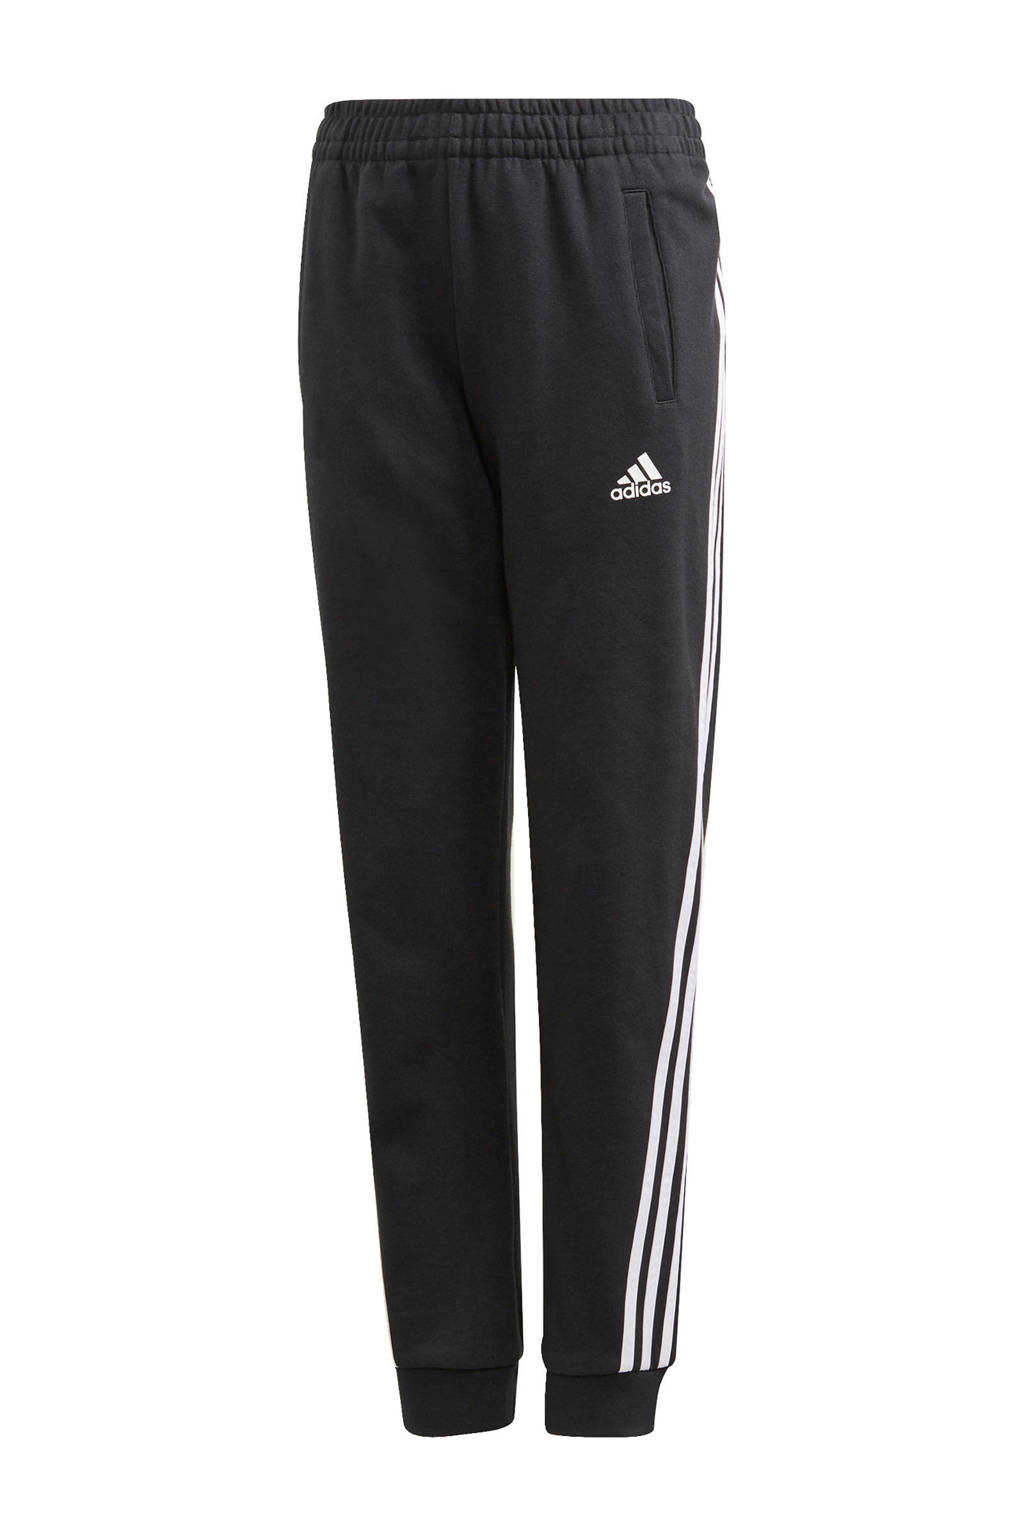 adidas Performance Girls In Power sportbroek zwart/wit, Zwart/wit